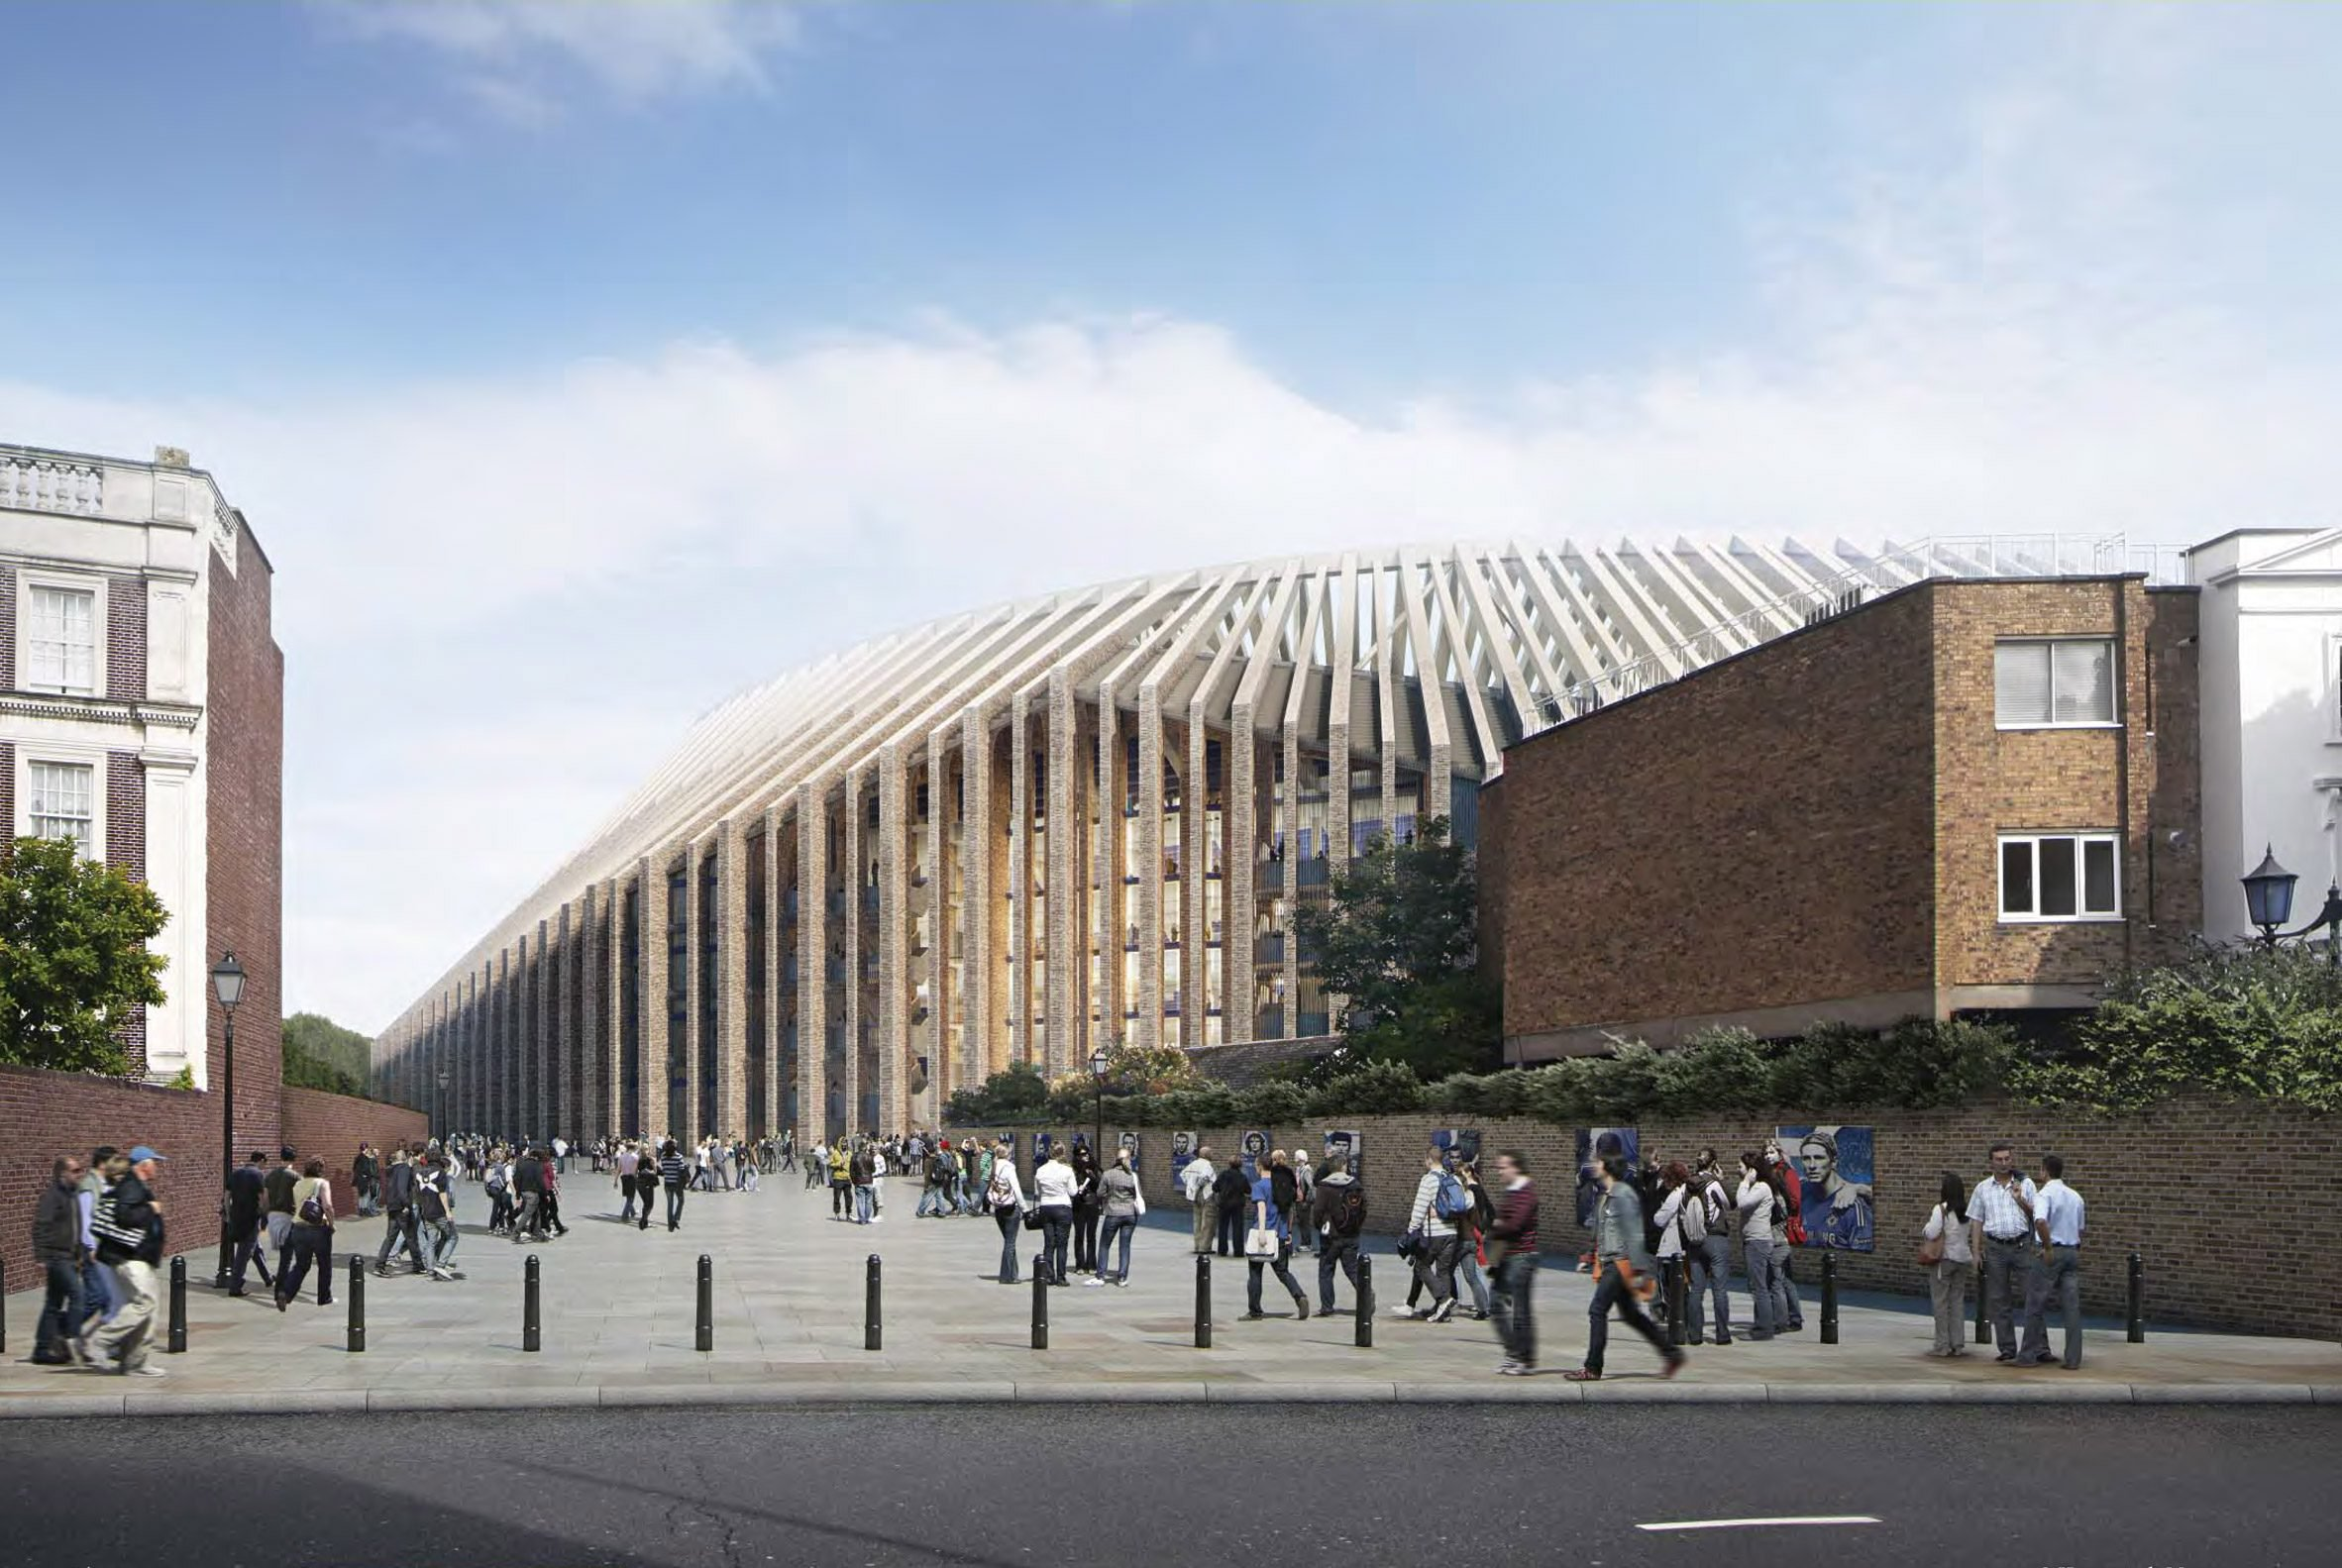 Chelsea seek council help with Stamford Bridge redevelopment dispute